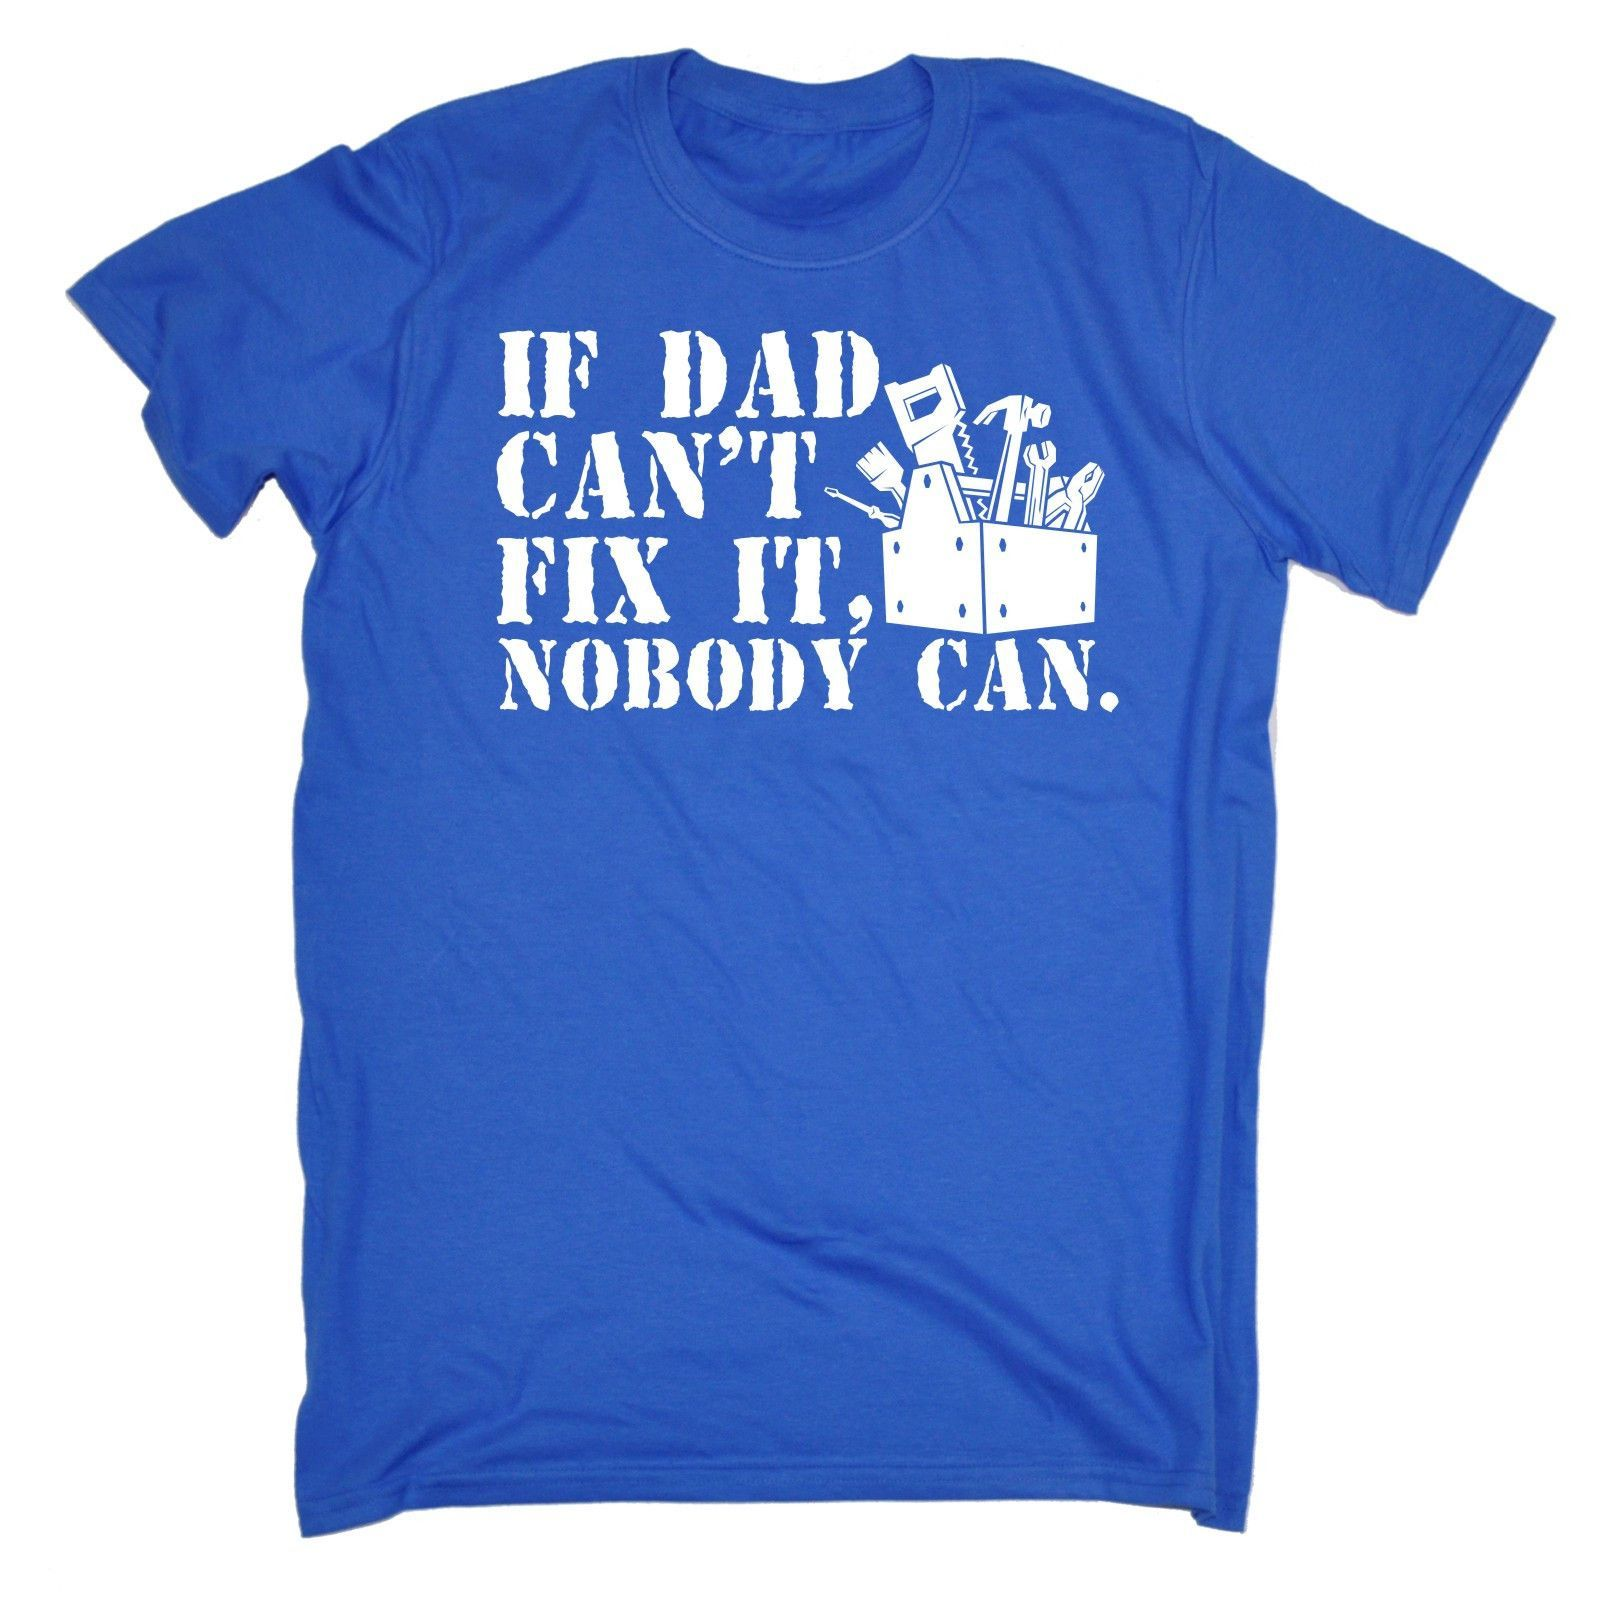 123t USA Men's If Dad Can't Fix It Nobody Can Funny T-Shirt